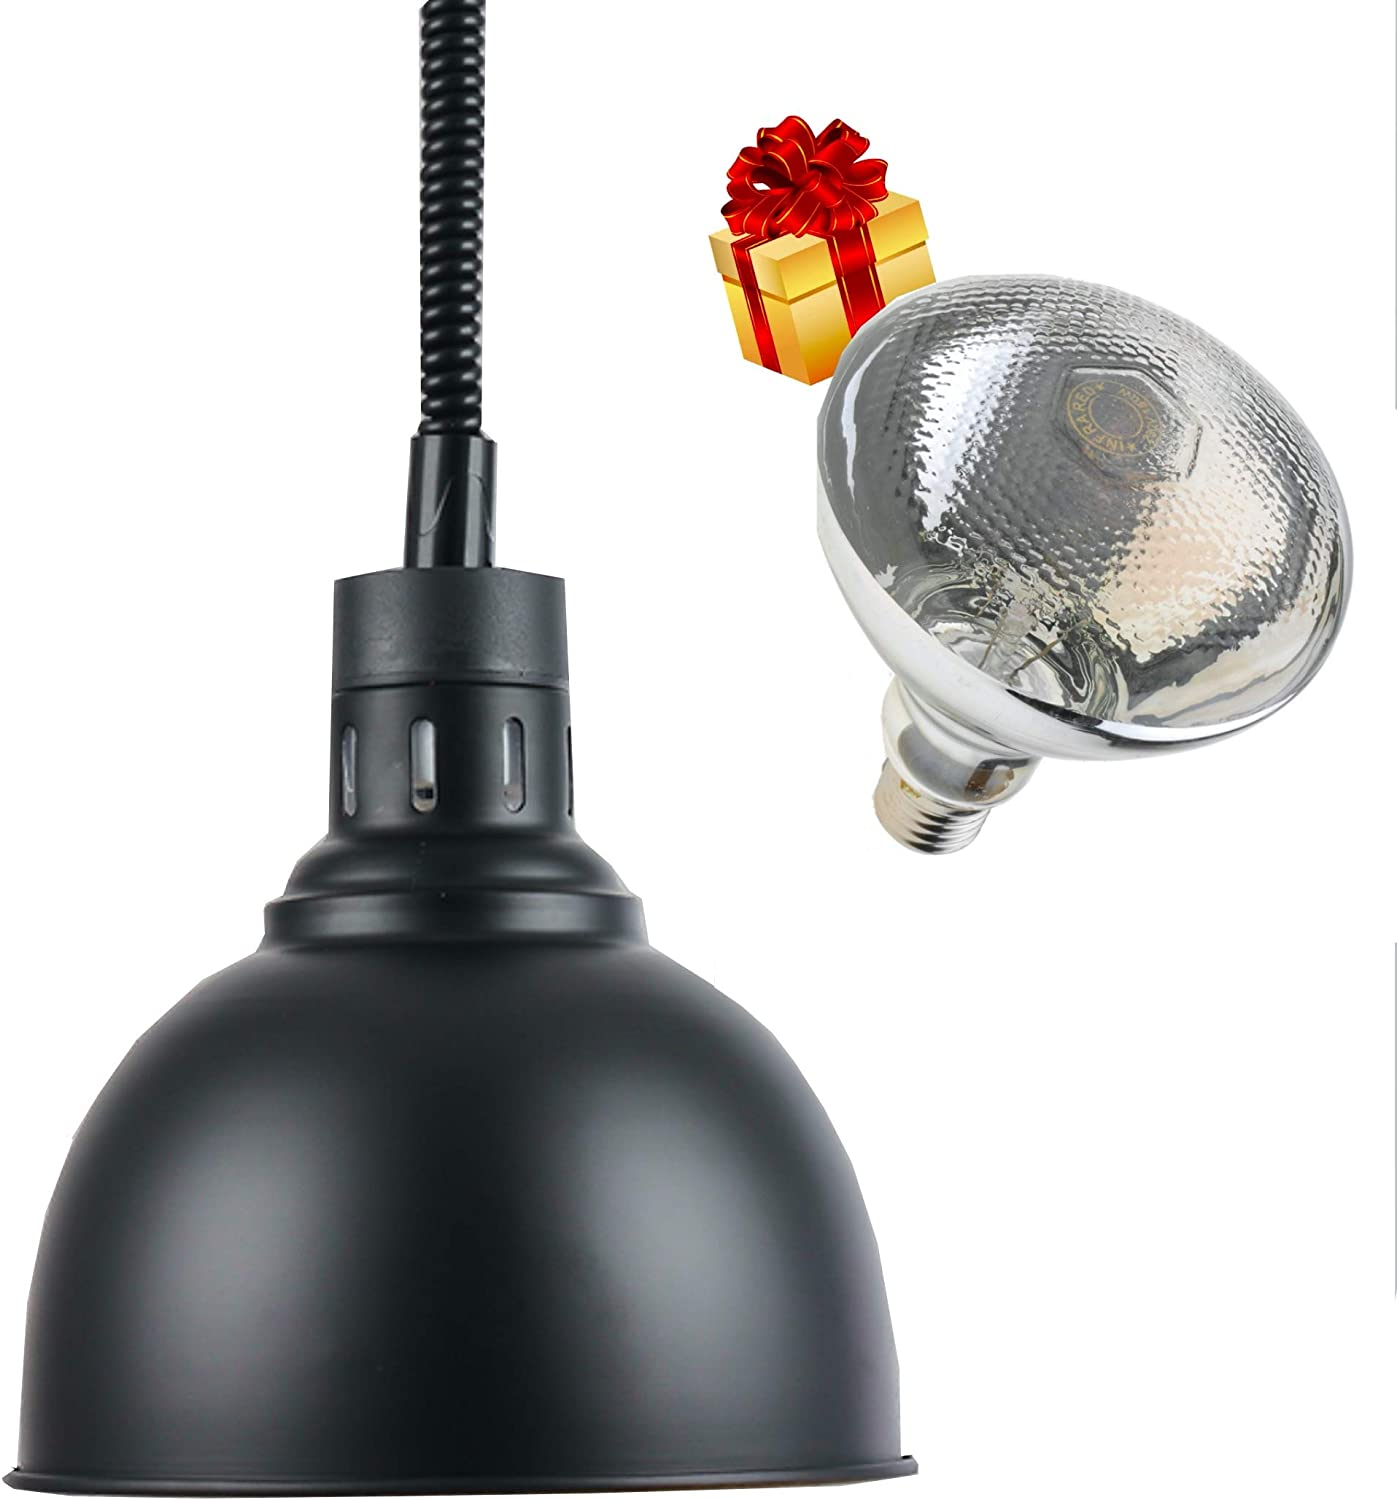 Commercial Food Heat Lamp 300W 60-180cm Length Food Warmer Lamp 250mm Food Heat Hanging Lamp Warmer with Lamp for Restaurant Home Cafeteria Use (BLACK) With One Extra Bulb